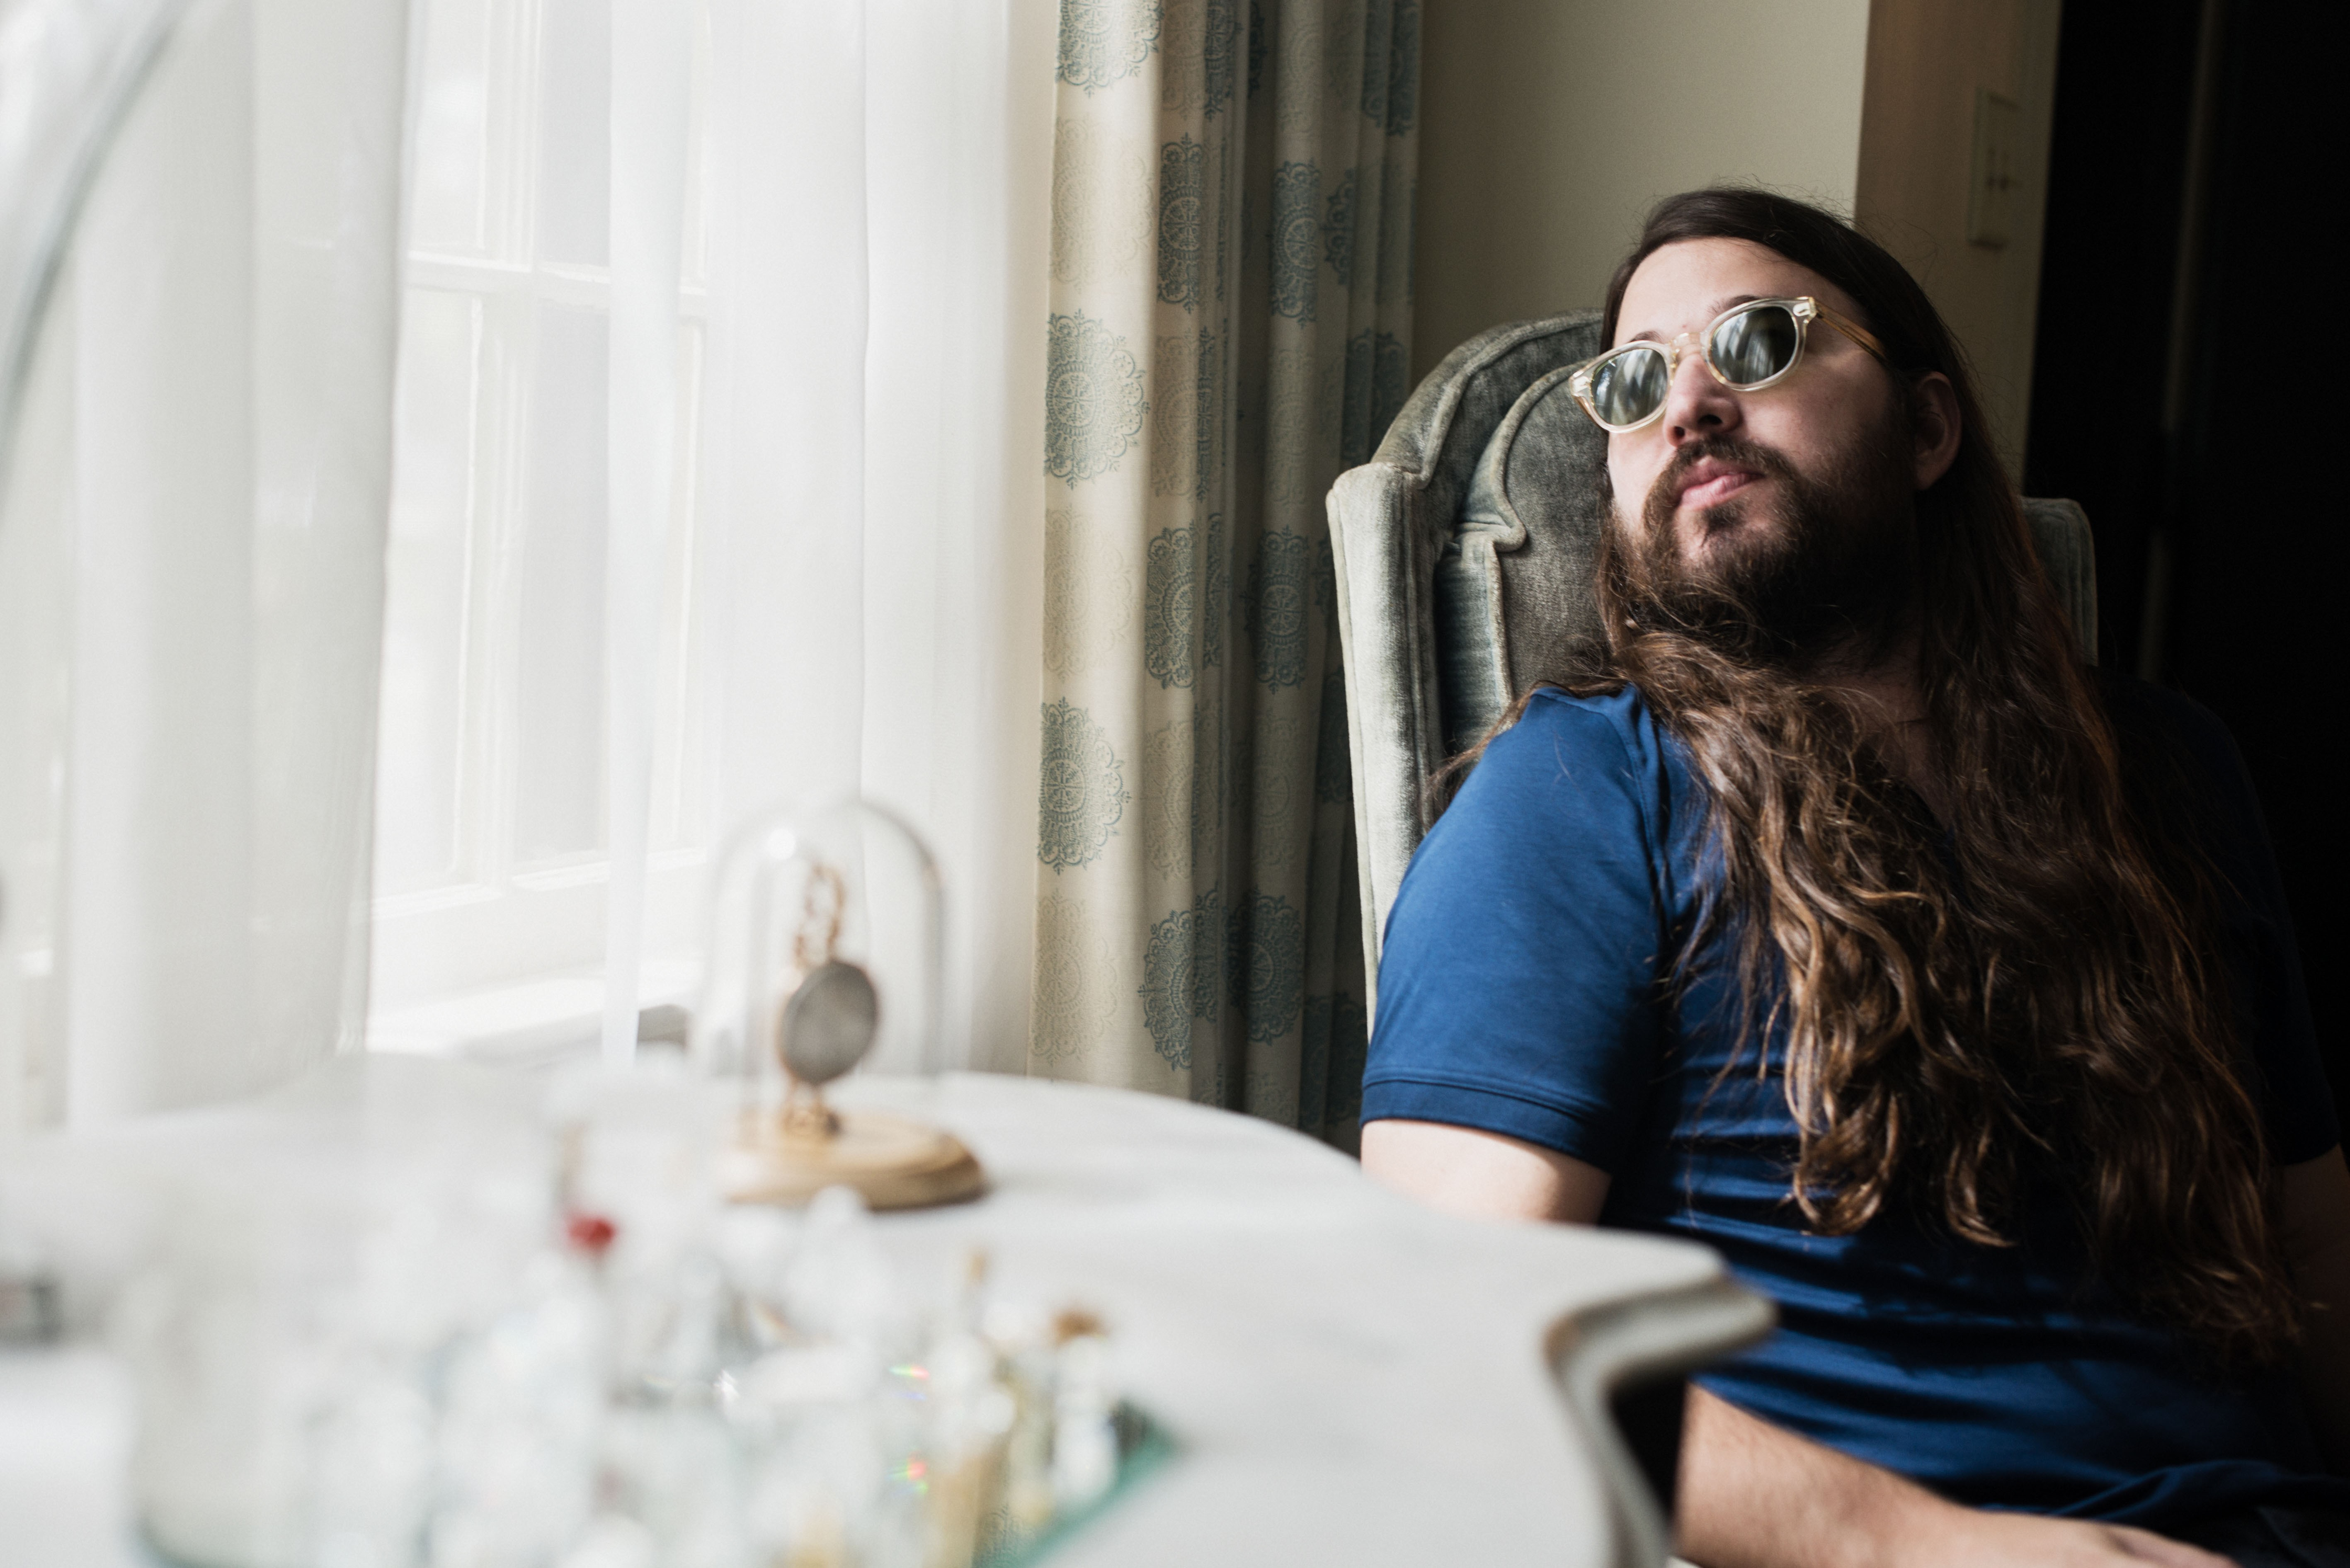 """Matthew White is on a world tour behind his acclaimed sophomore album, """"Fresh Blood."""" And he's getting Richmond musicians noticed."""